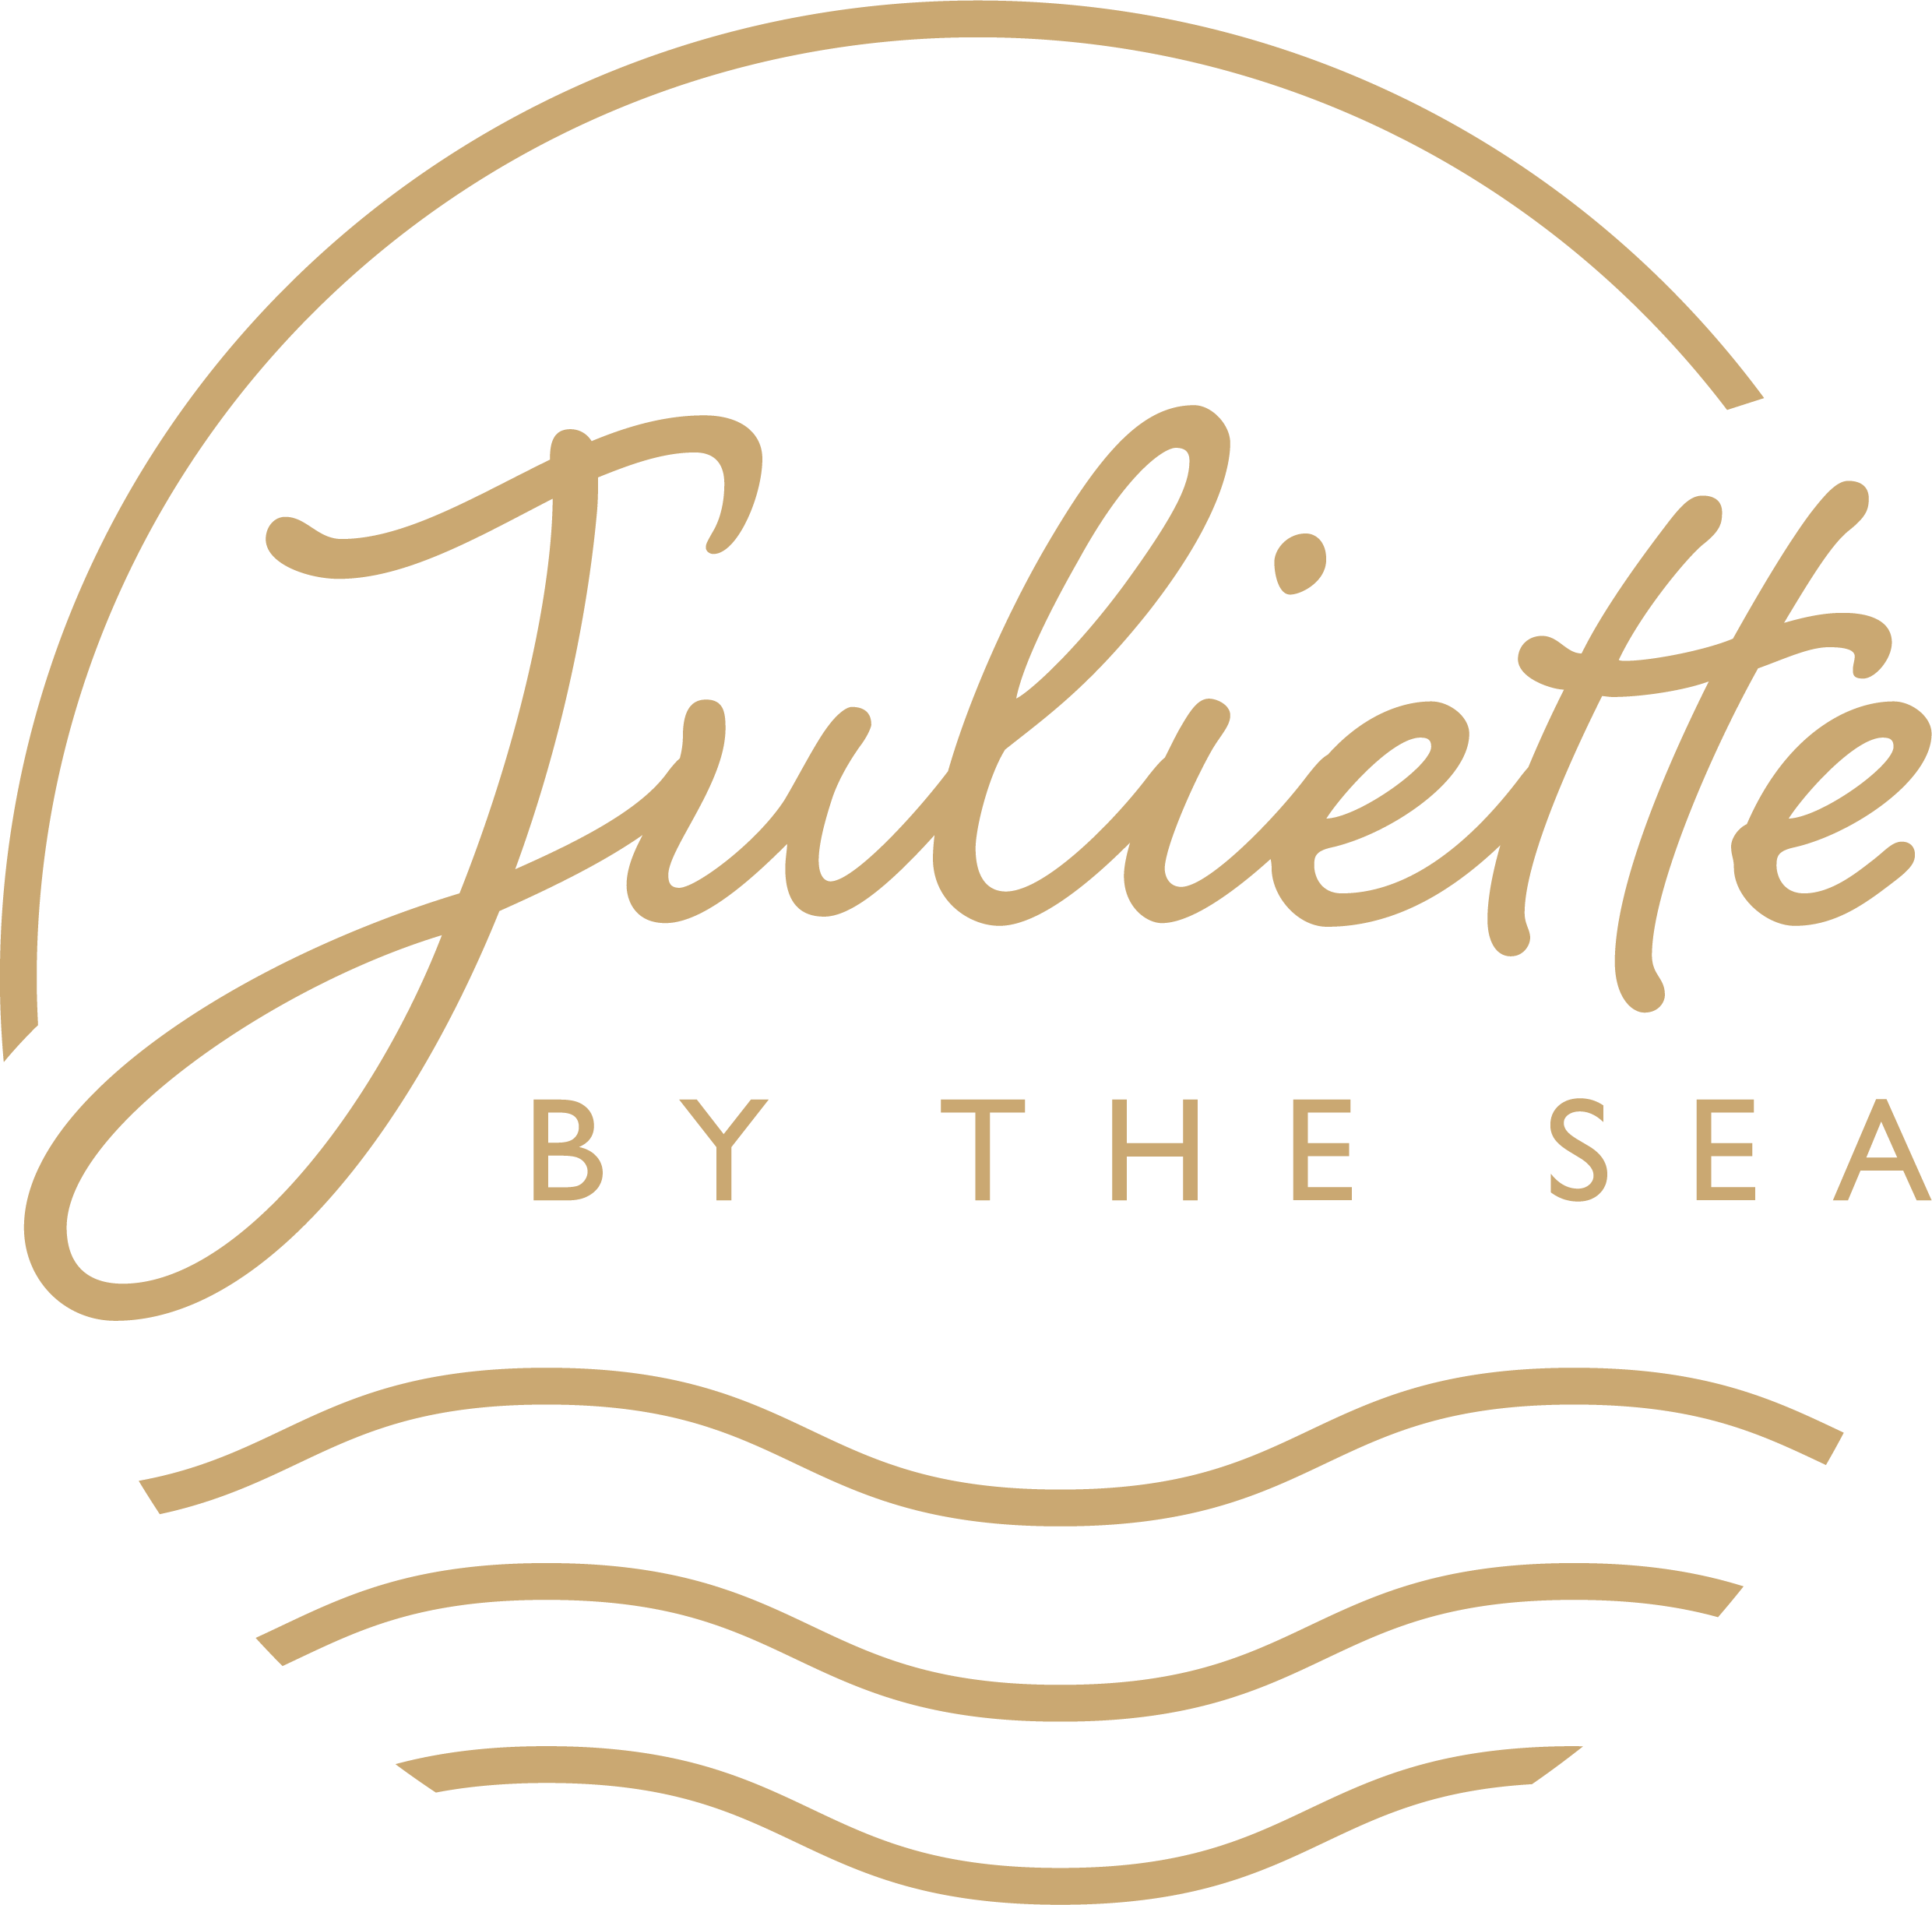 Juliette by the sea celebrant logo